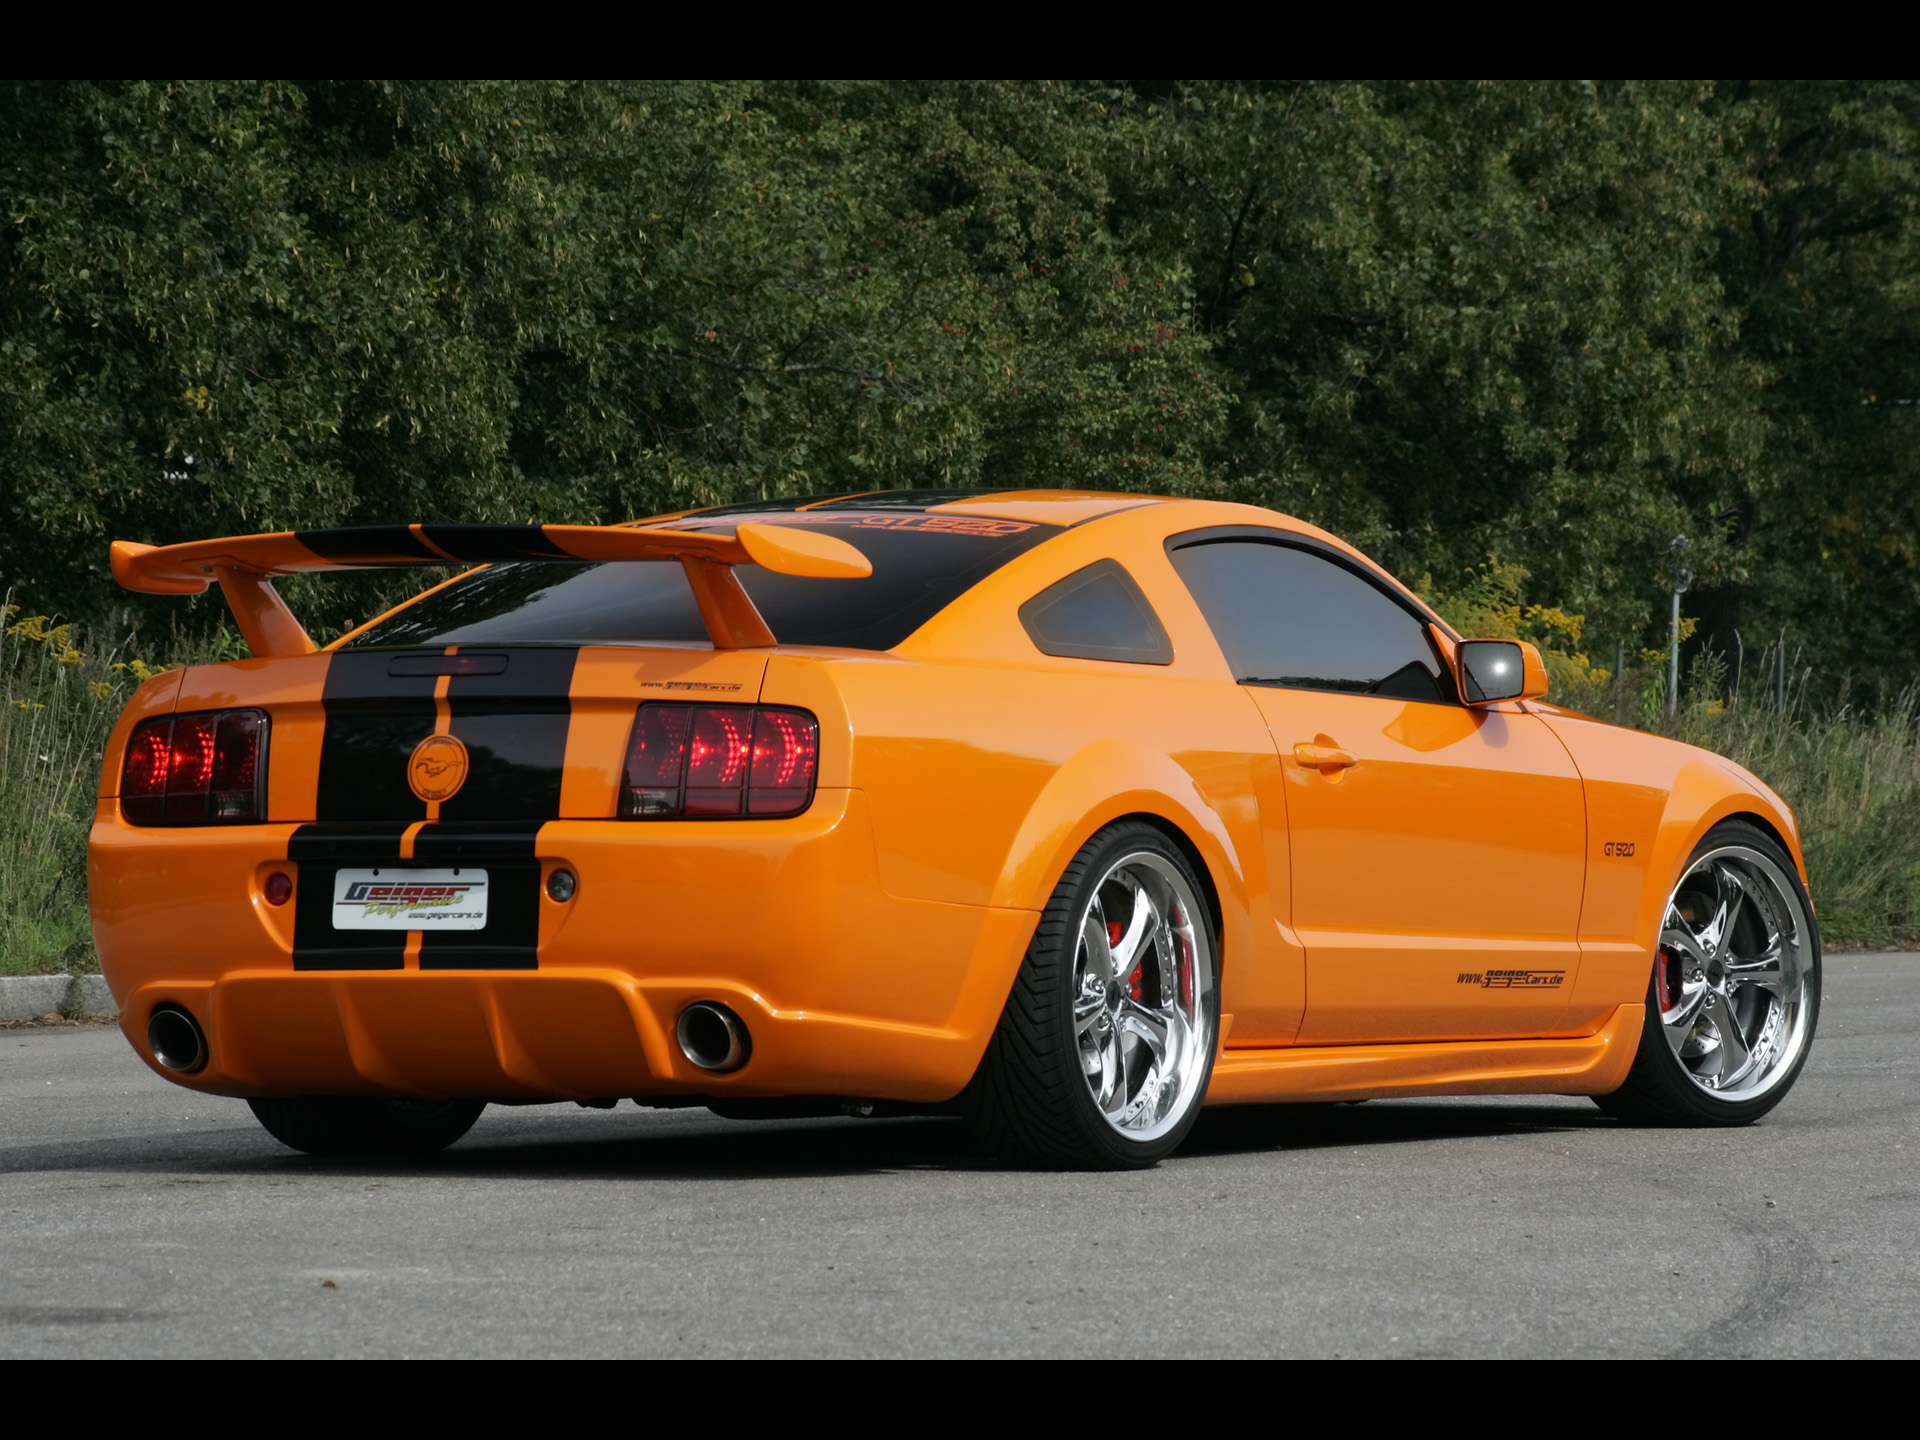 Ford Mustang - 1920 x 1440, 11 из 17